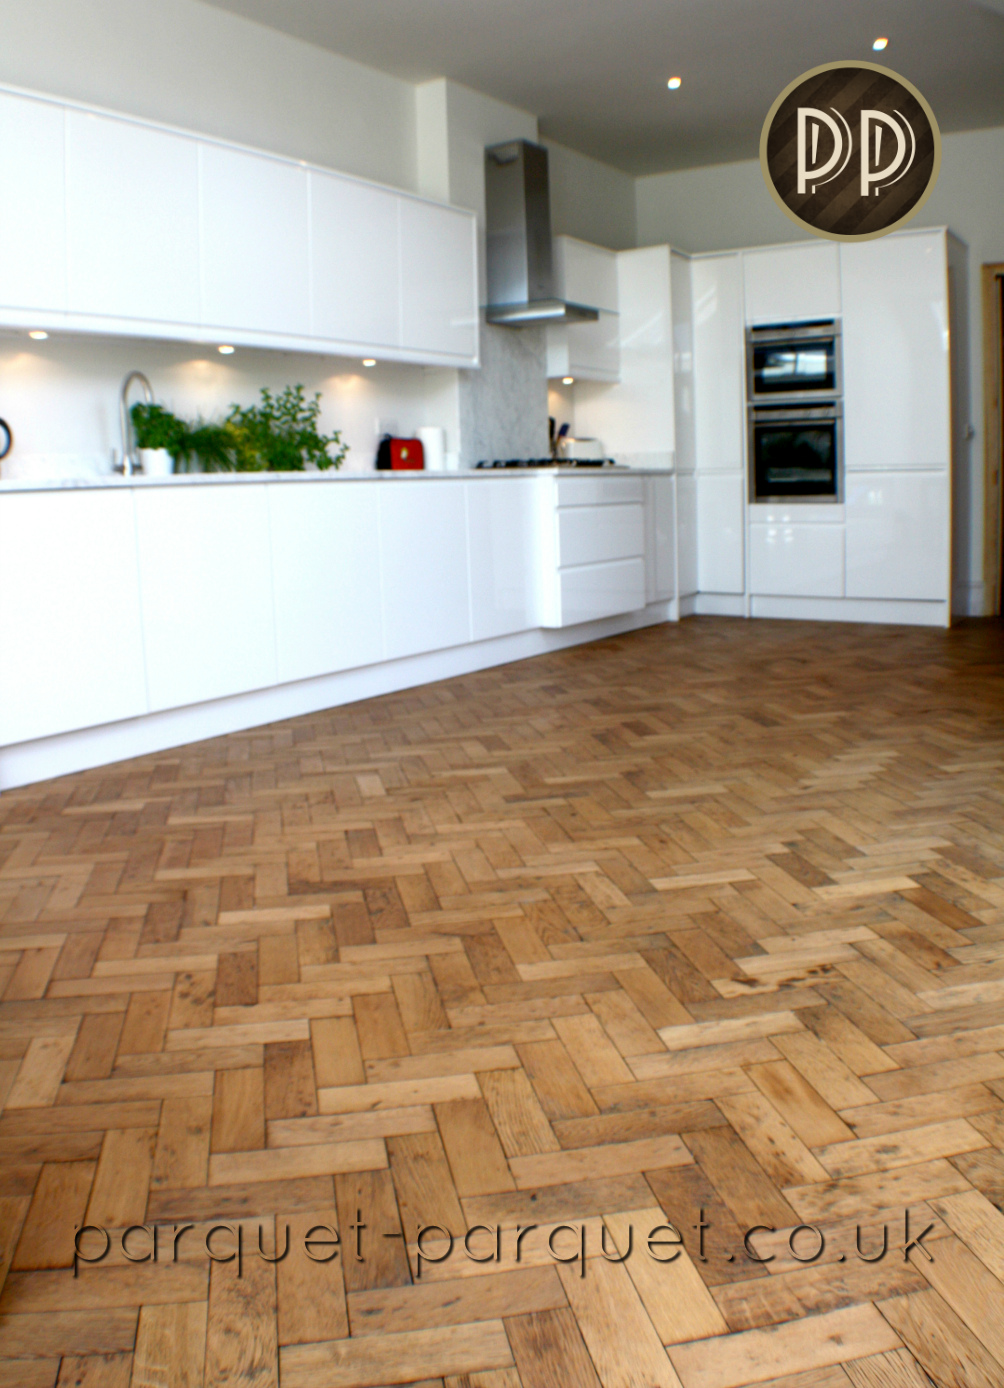 Oak kitchen flooring ideas parquet parquet for Kitchen flooring ideas uk